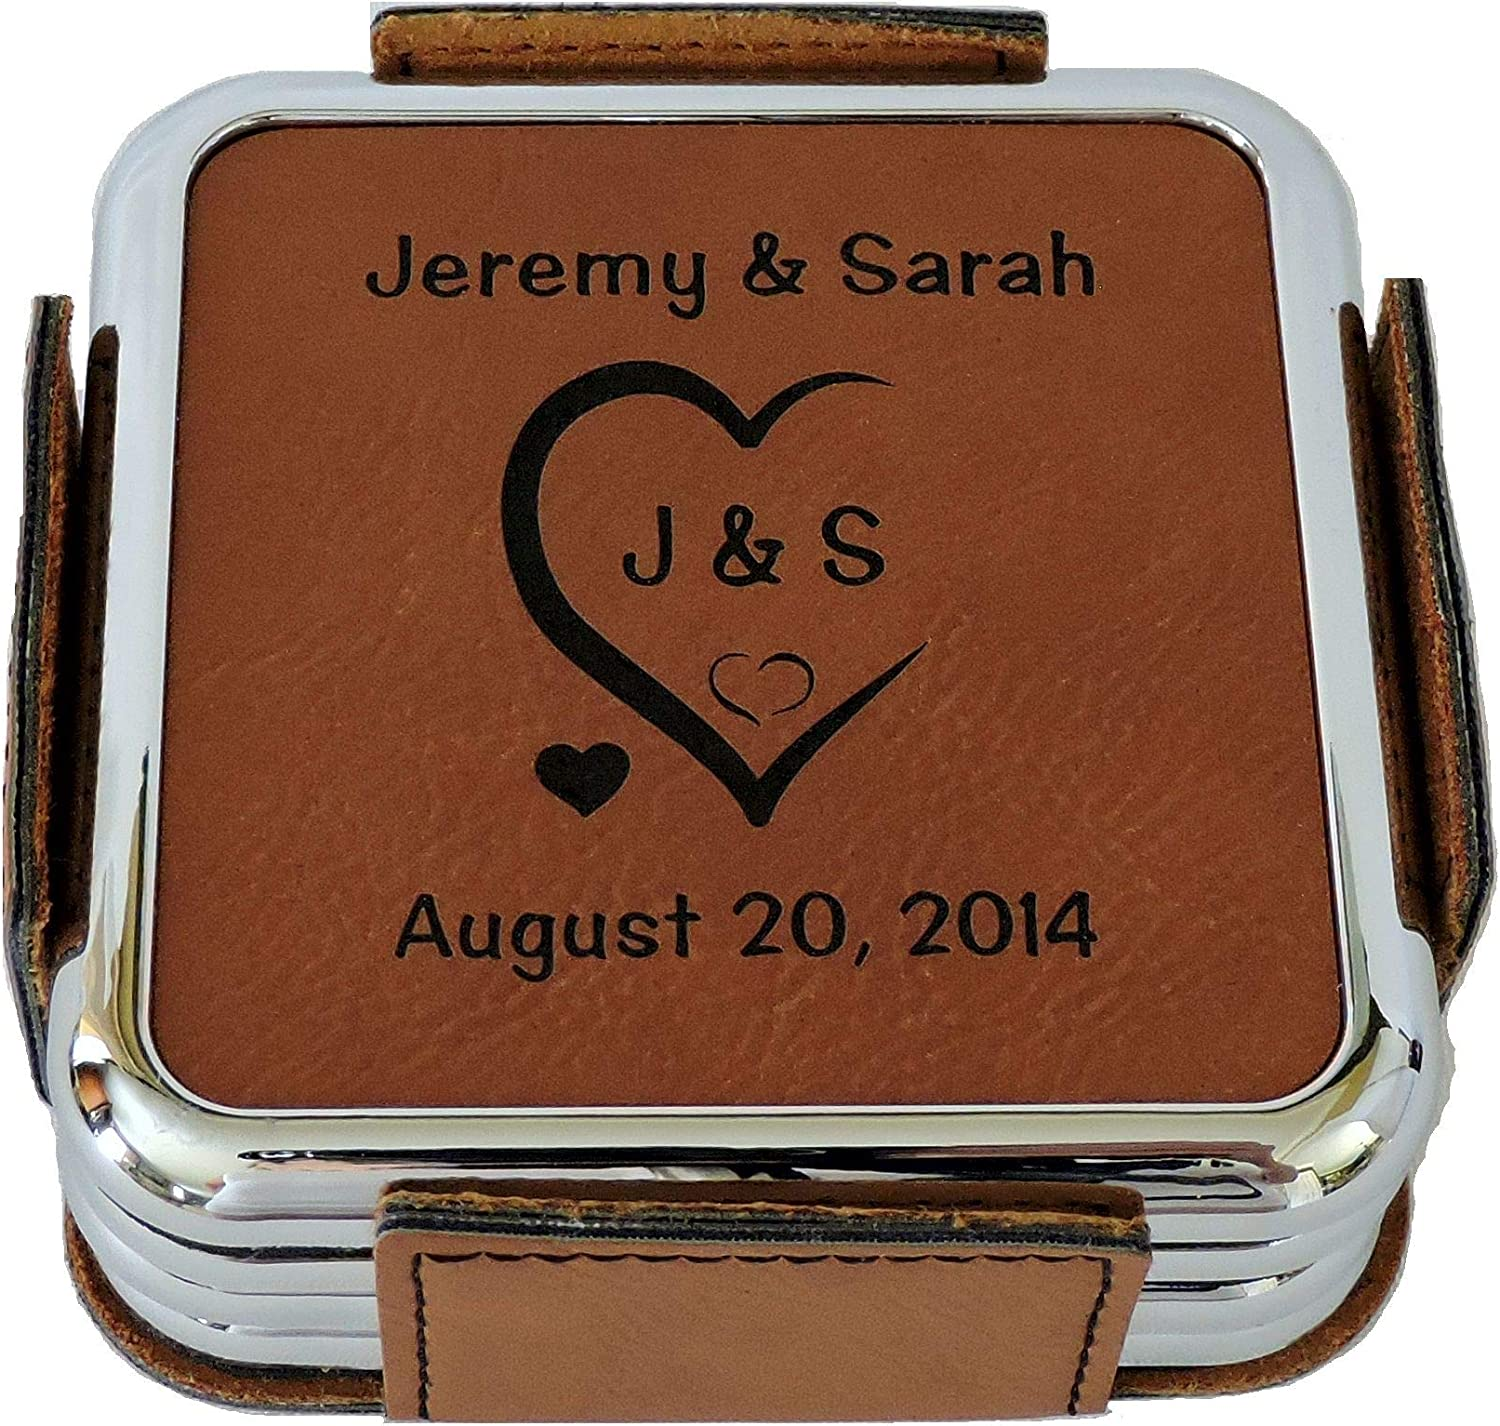 Leather Coasters Personalized with Initials in Carved and online shop Heart Safety trust